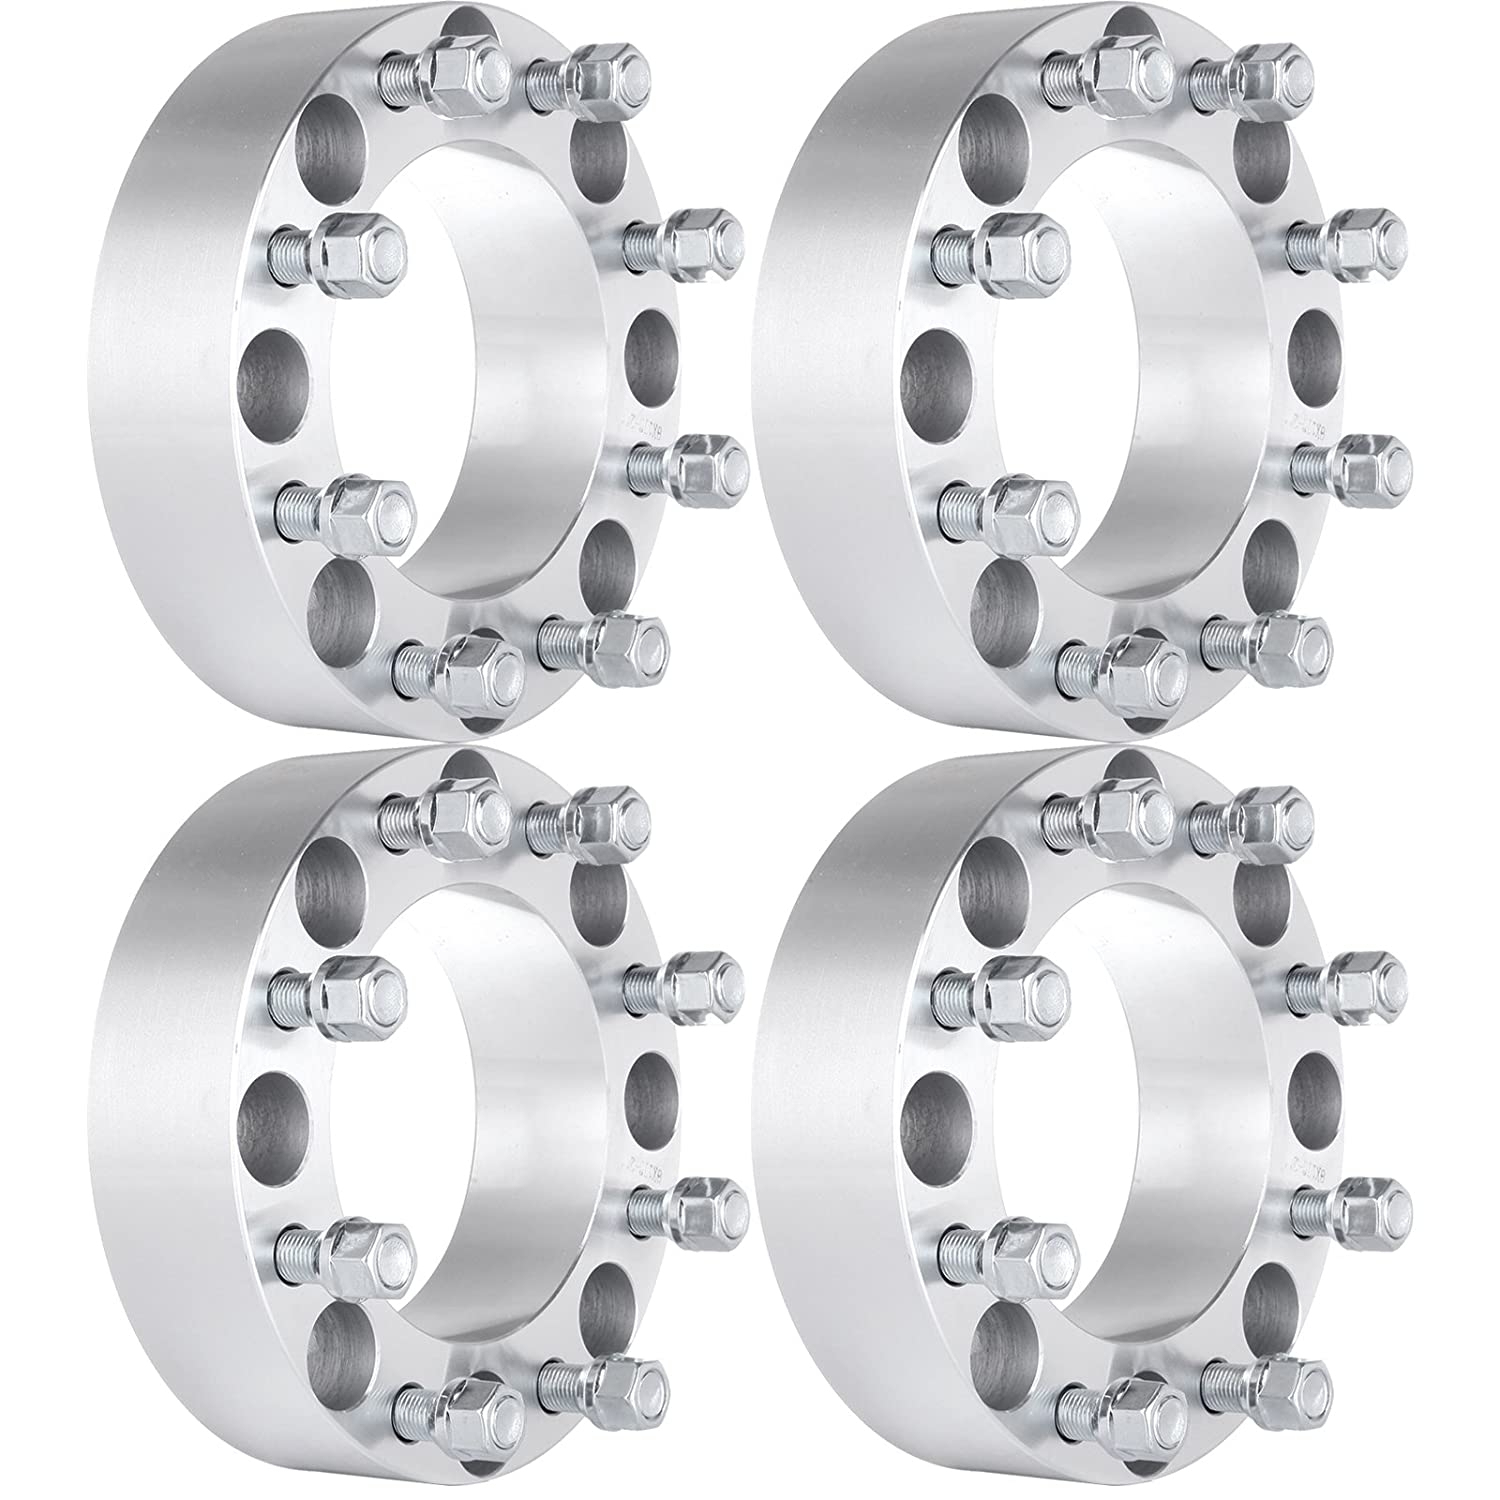 ECCPP 2 inch 8x170mm 14x1.5 Studs Wheel Spacers 8x170 to 8x170 125mm Compatible with Ford Excursion F250 F350 Super Duty